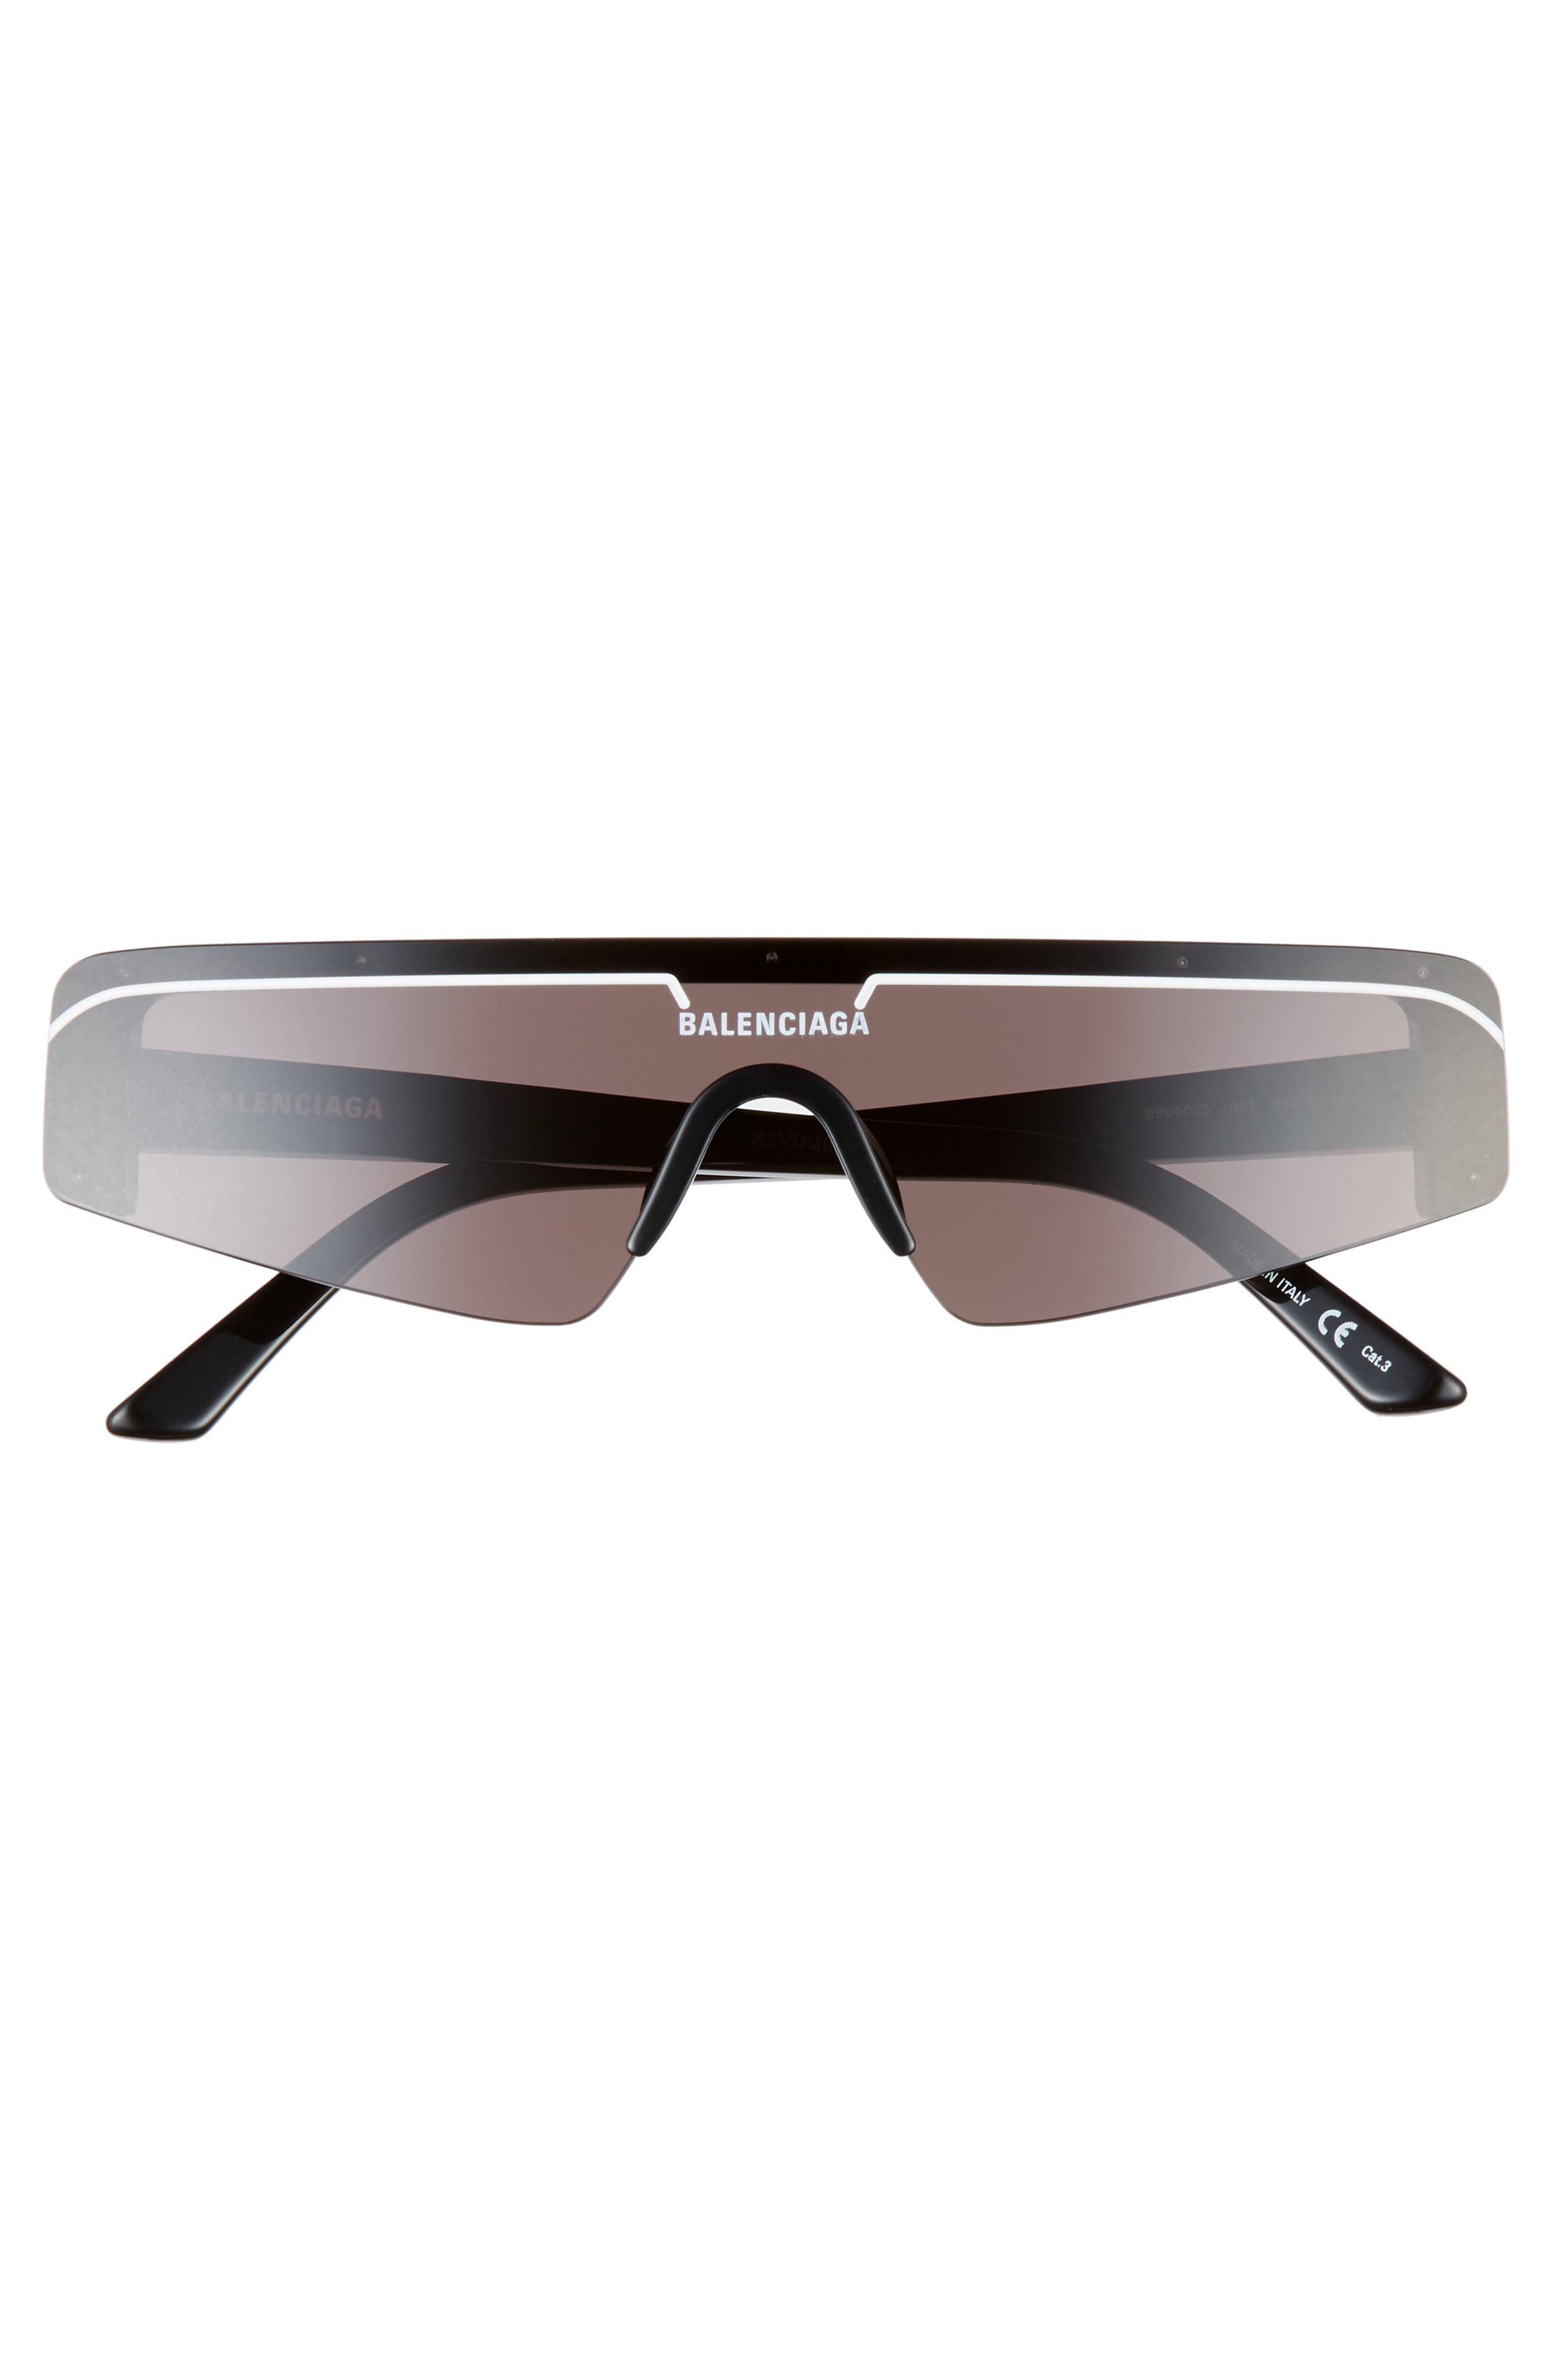 BALENCIAGA, 99mm Shield Sunglasses, Alternate thumbnail 3, color, SHINY BLACK/ GREY